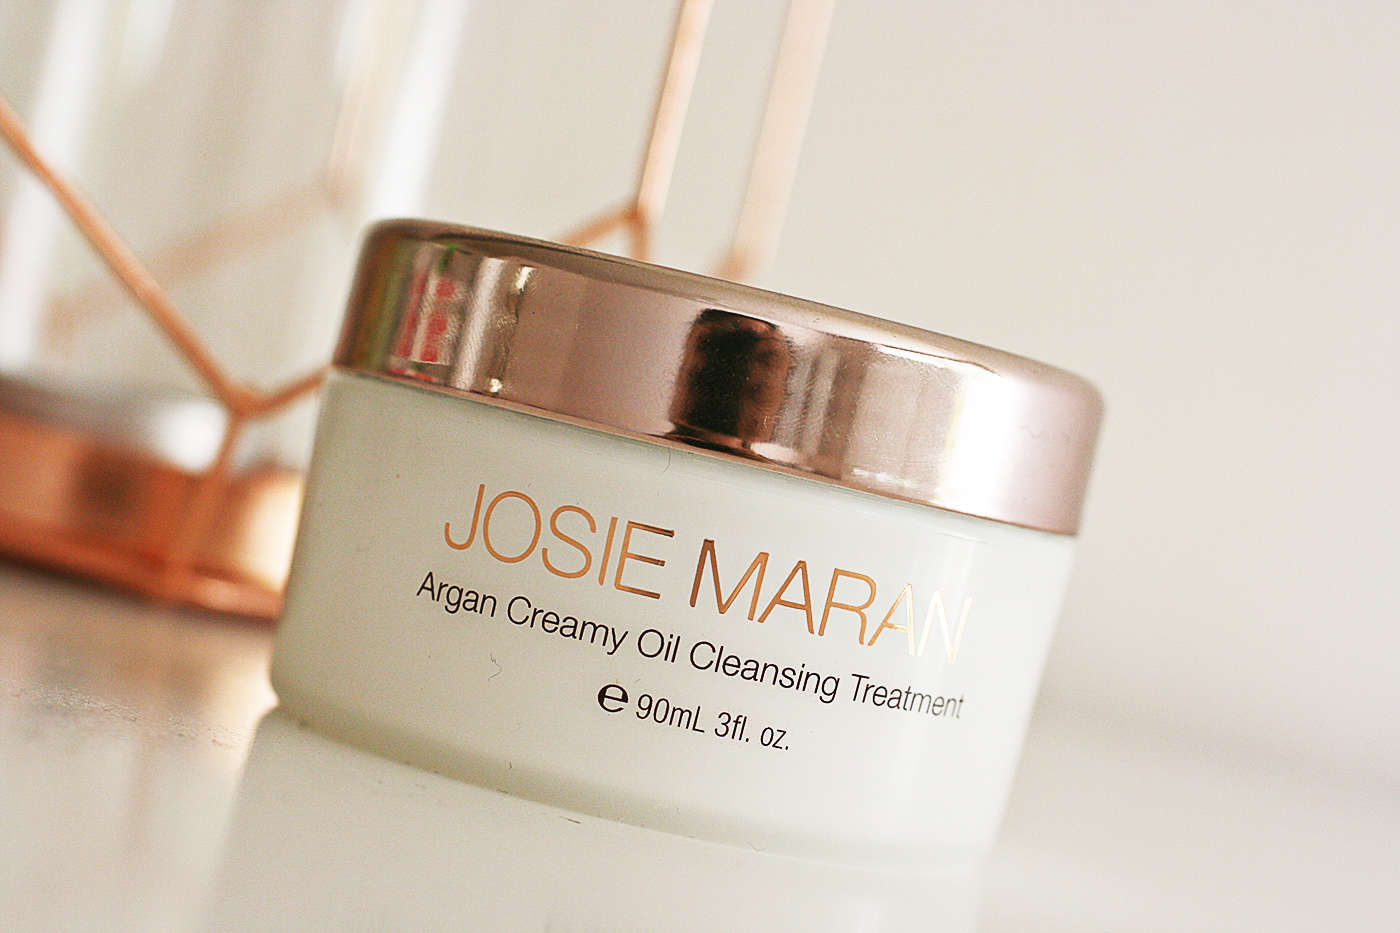 Josie Maran Argan Creamy Oil Cleansing Treatment